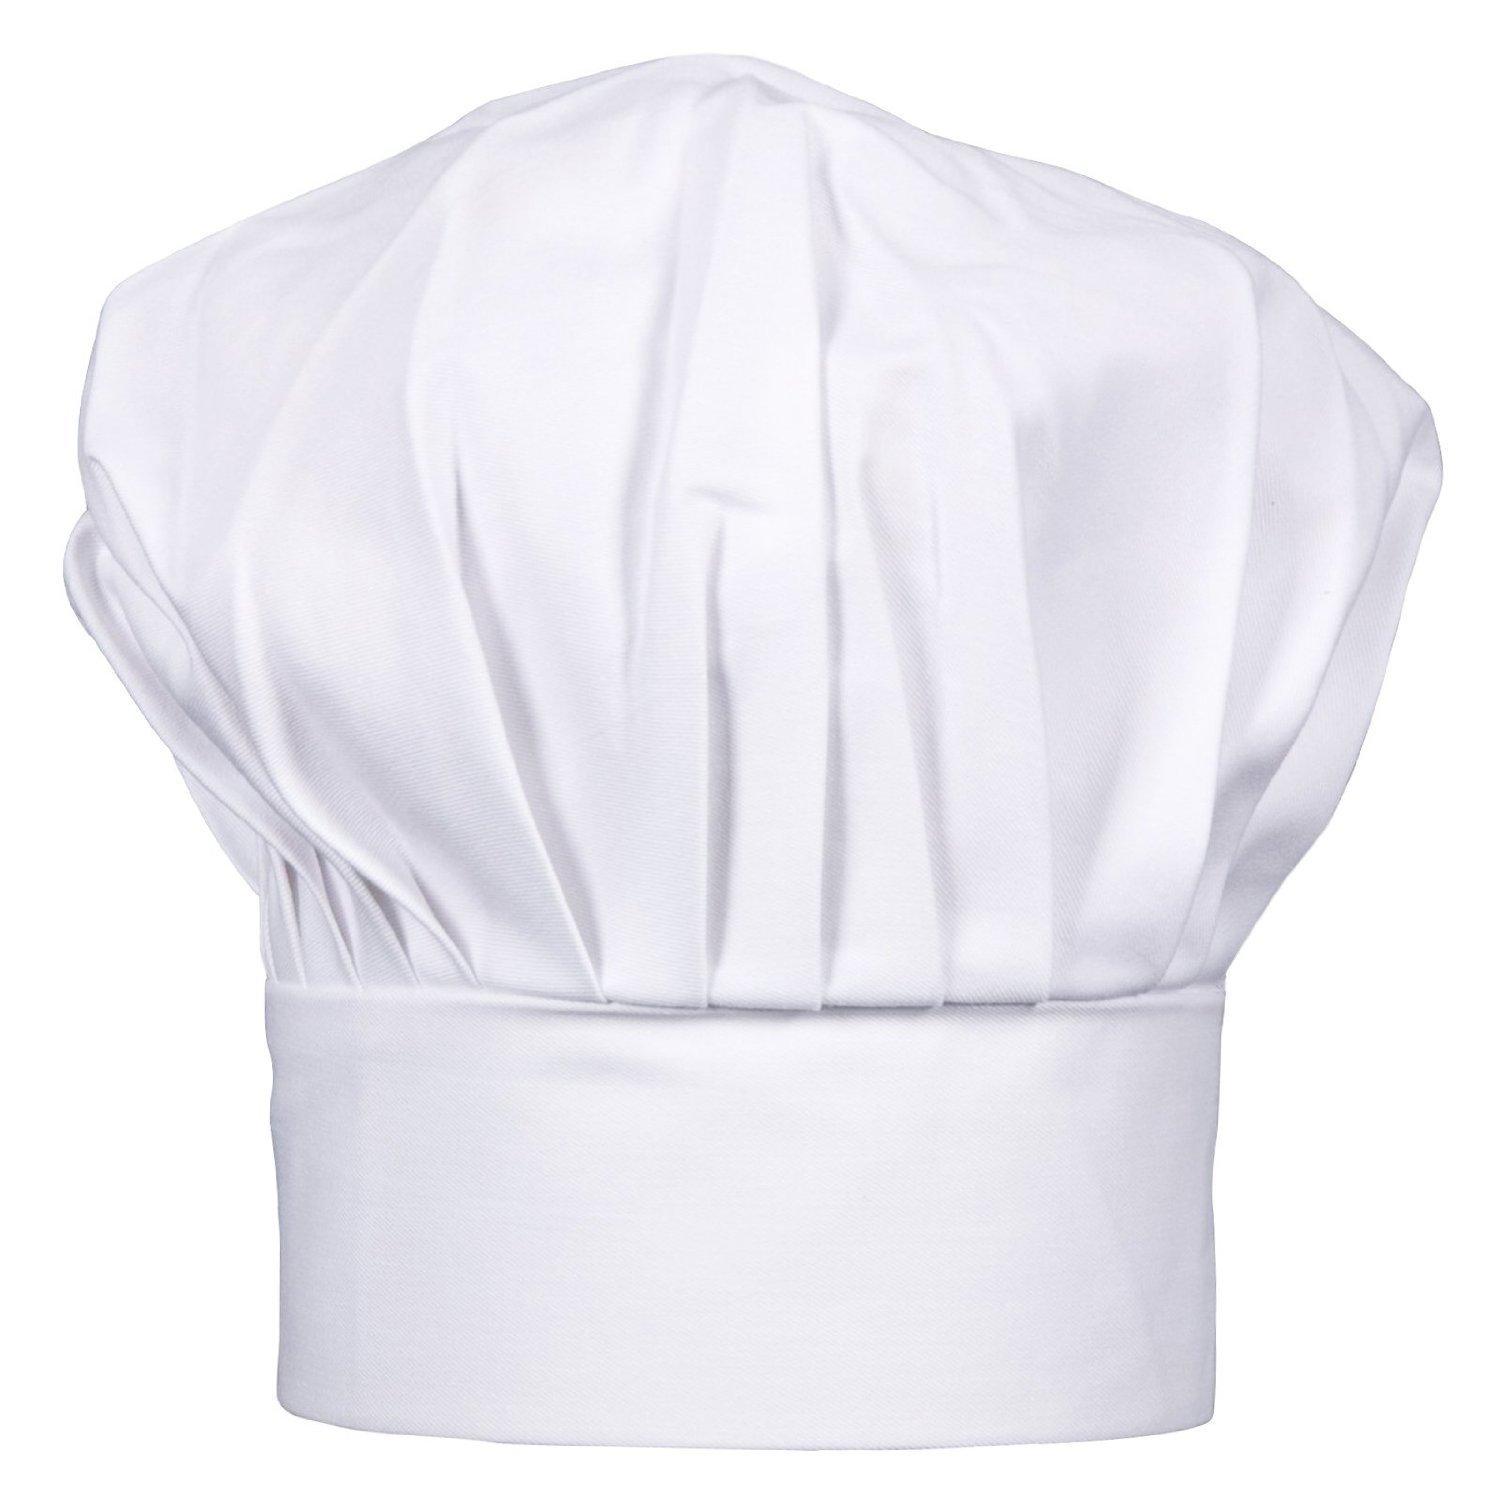 CHEFSKIN Kids Chef Hat WHITE LOT LOTS WHOLESALE (JUST LIKE THE ORIGINAL CHEFS WEAR) Velcro Adjustable (100)